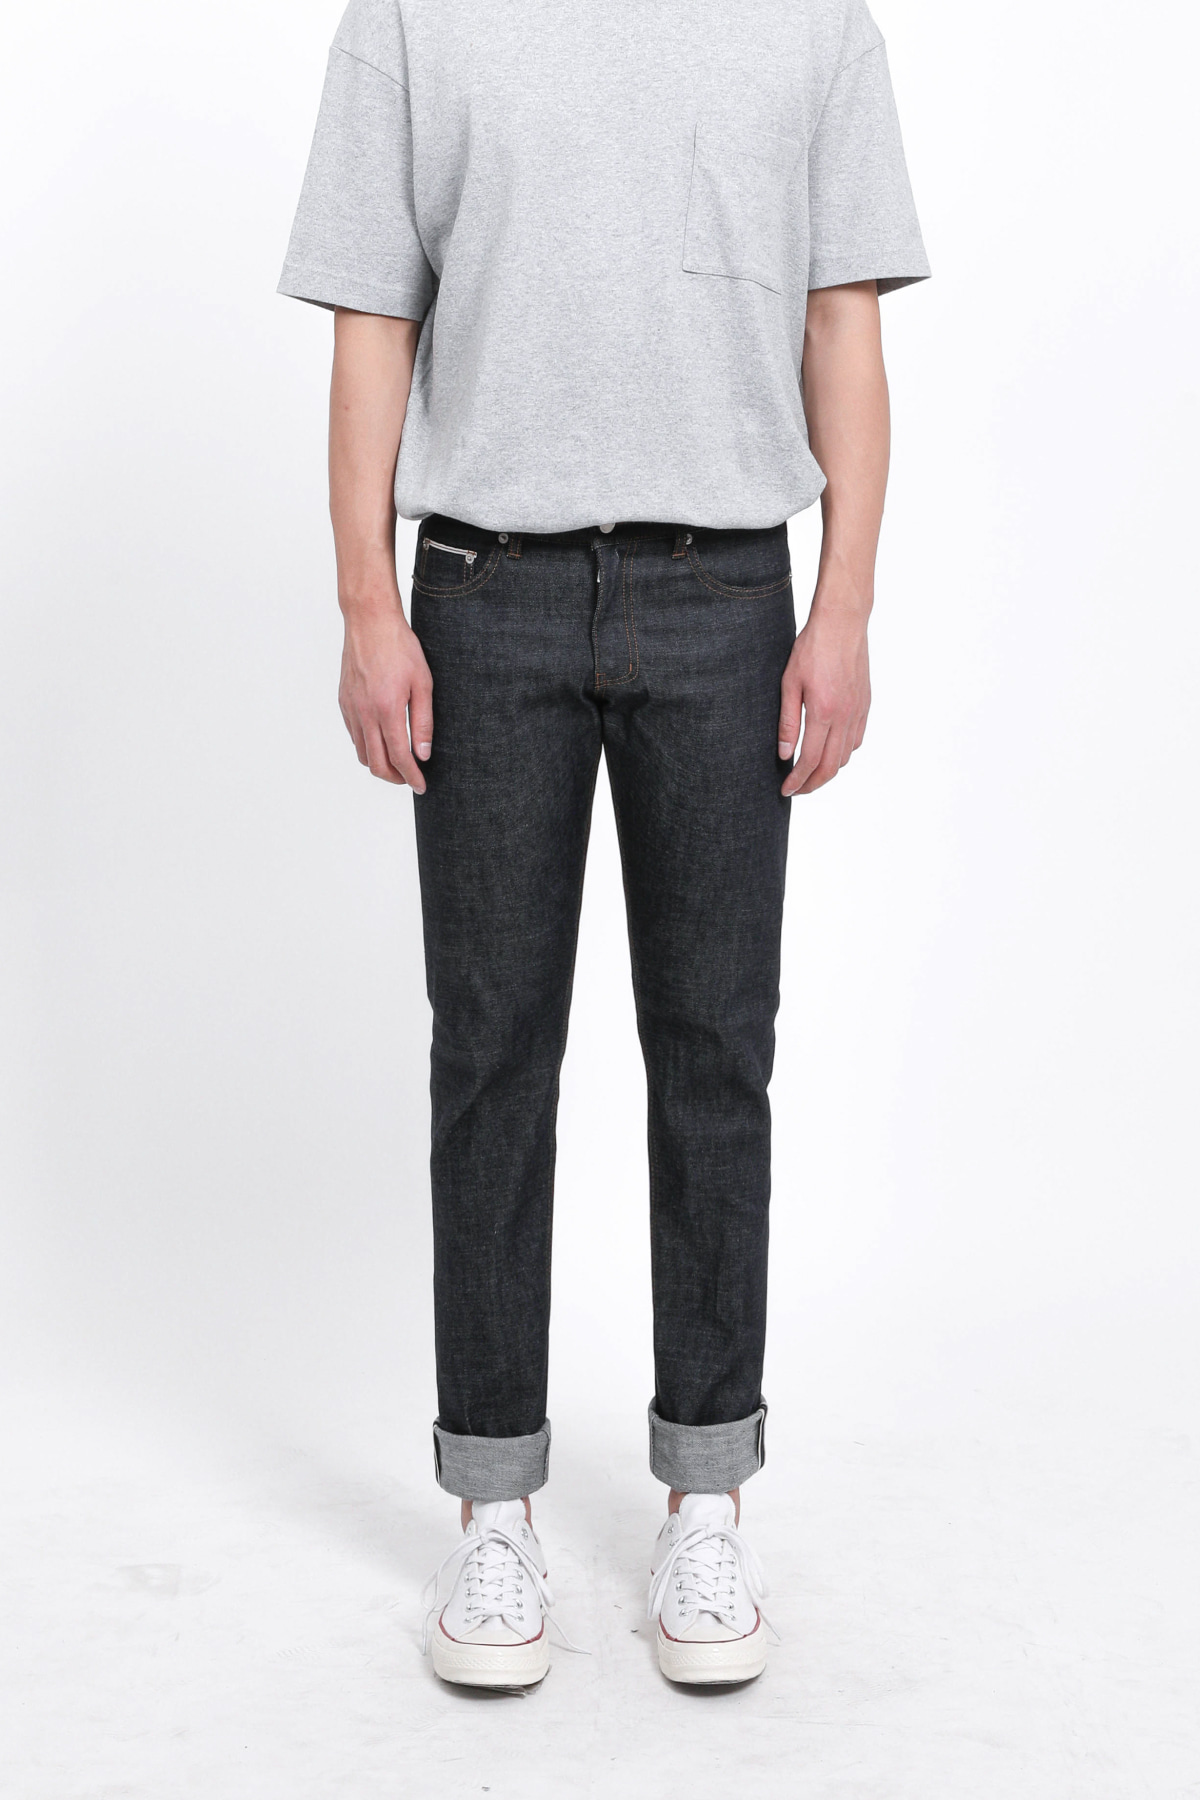 #0131 Pure Japanese selvedge jean